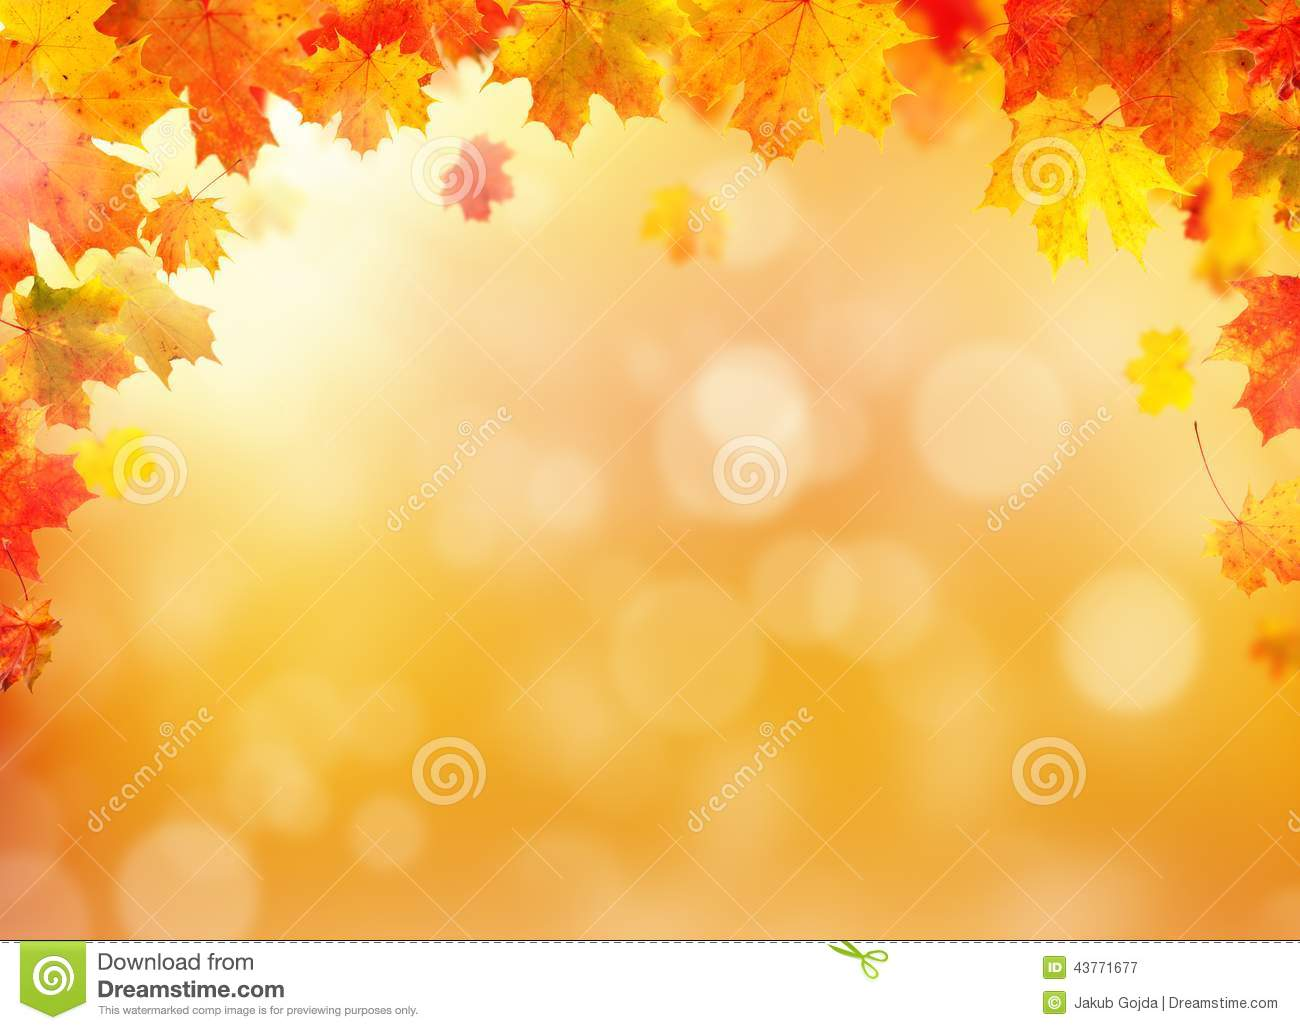 Falling Down Flowers Wallpaper Autumn Leaves Background With Free Space For Text Stock